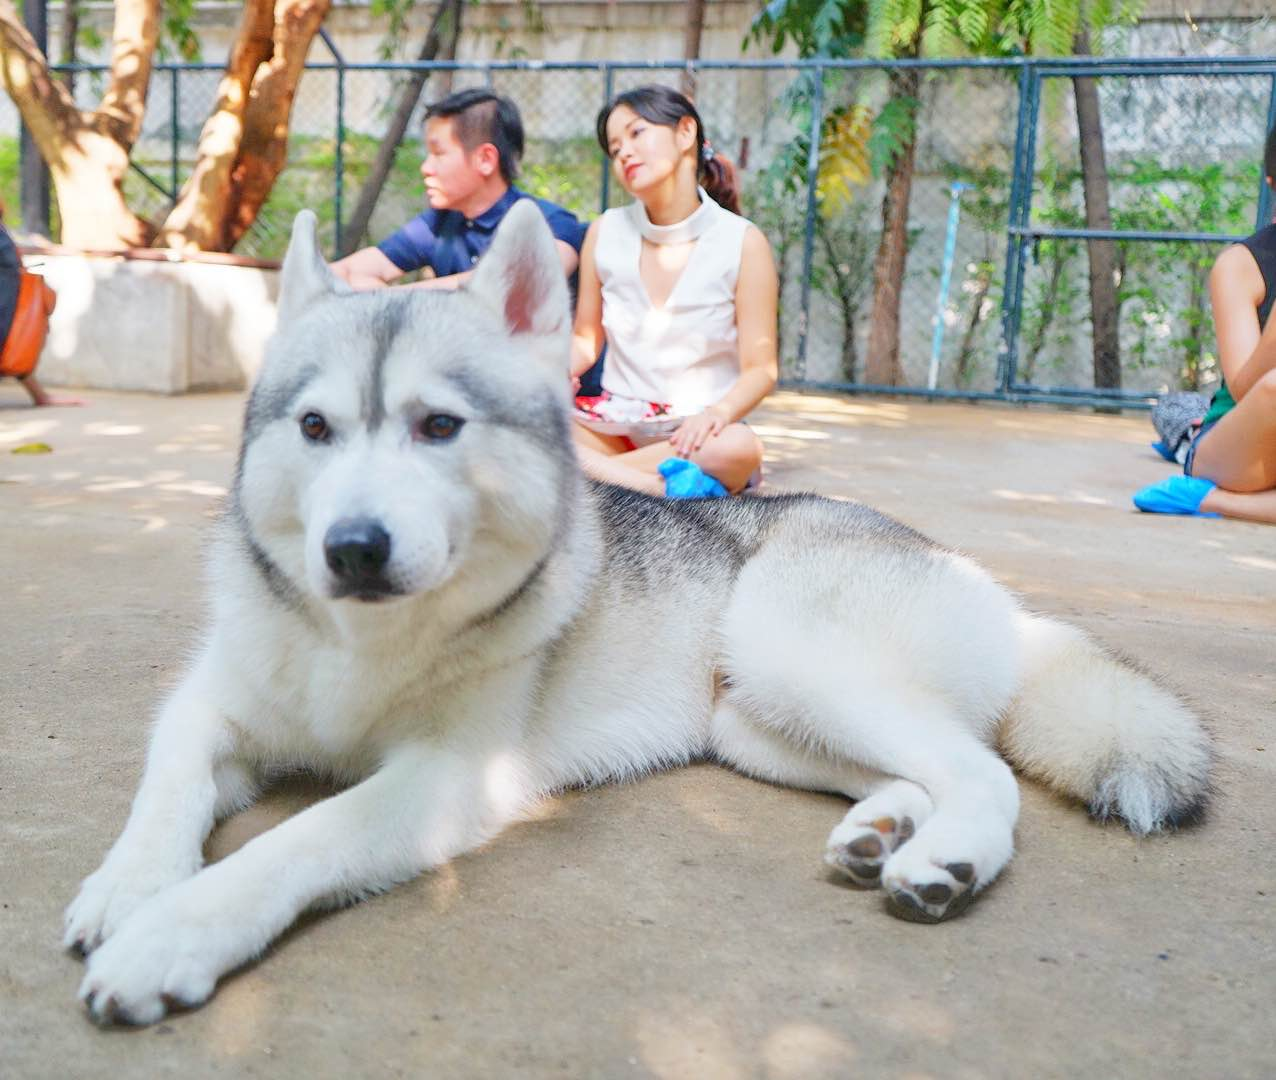 Husky Chilling Out At Neverland Siberian True Love Cafe, Bangkok - AspirantSG